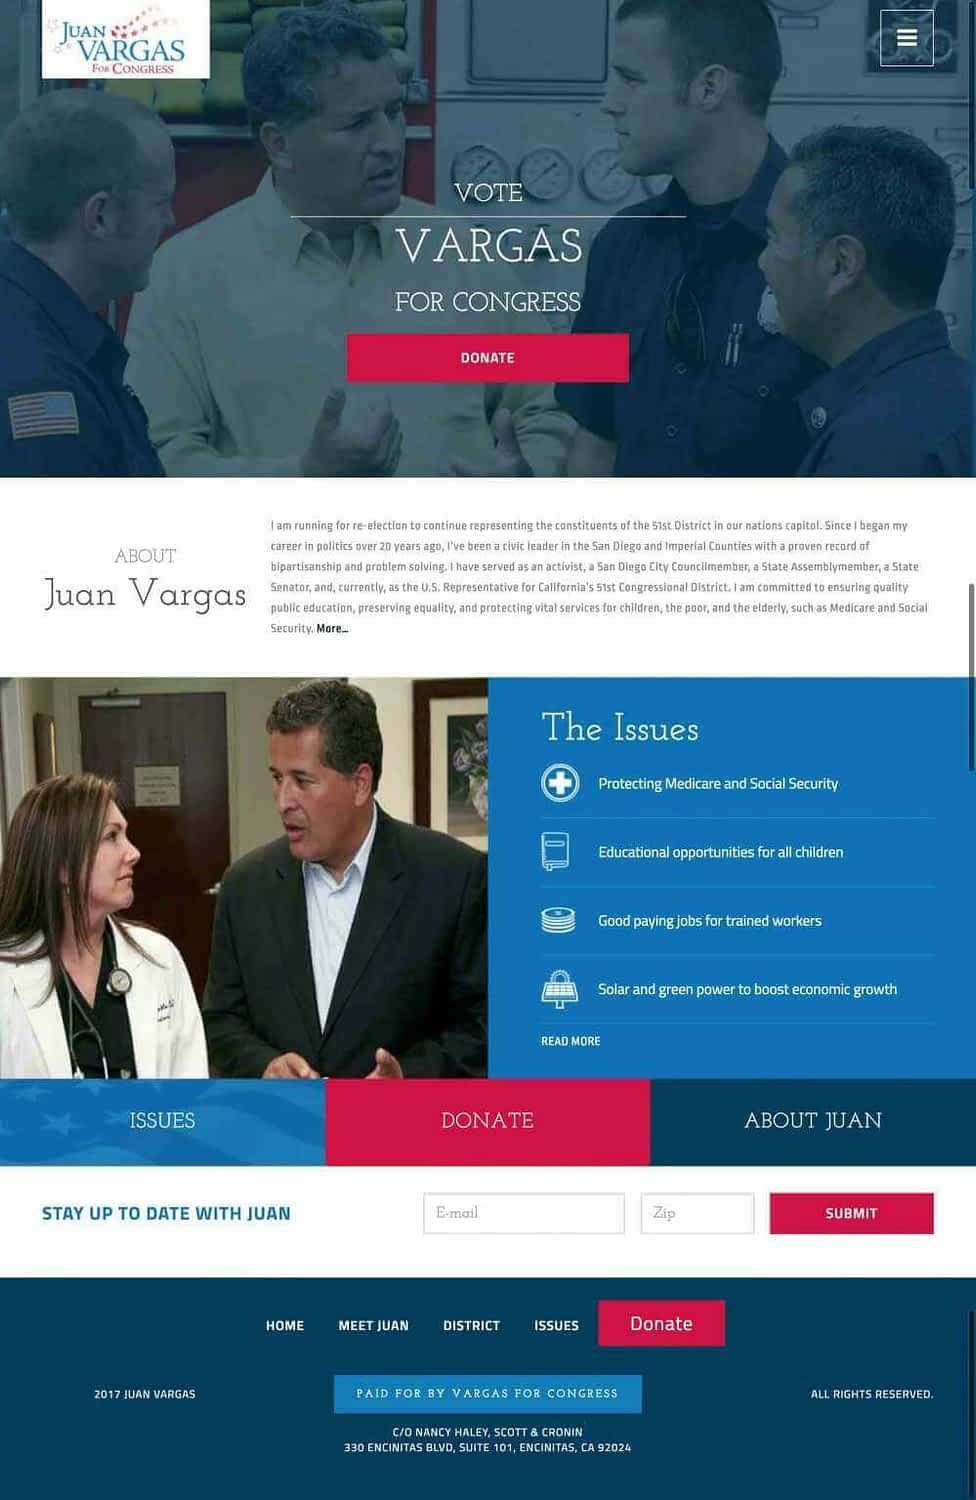 Juan Vargas for Congress website design